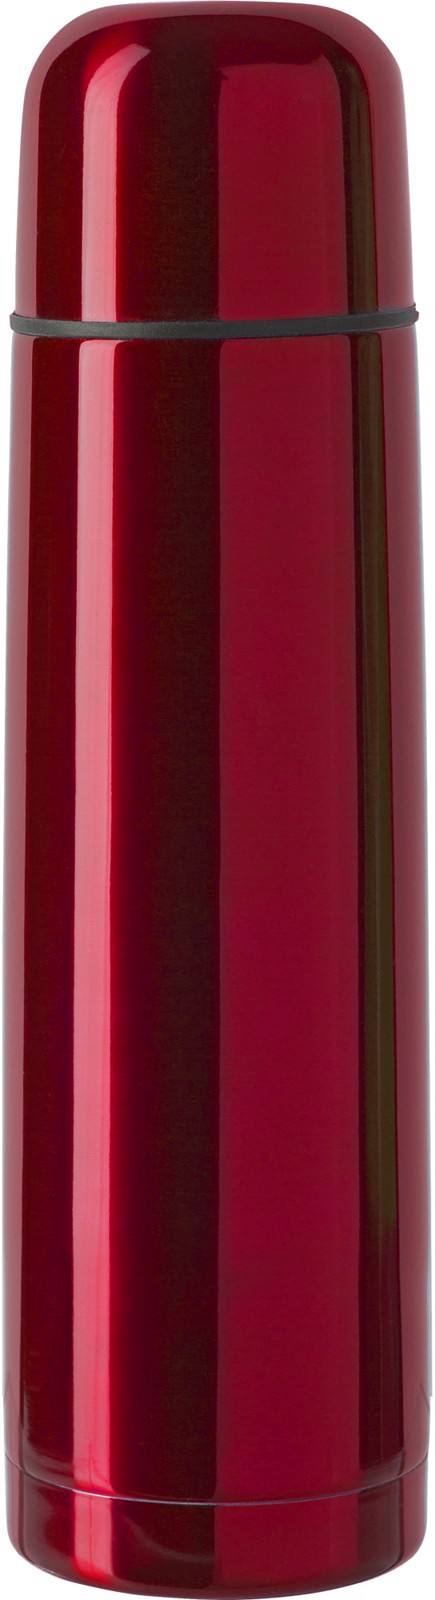 Stainless steel double walled flask - Red